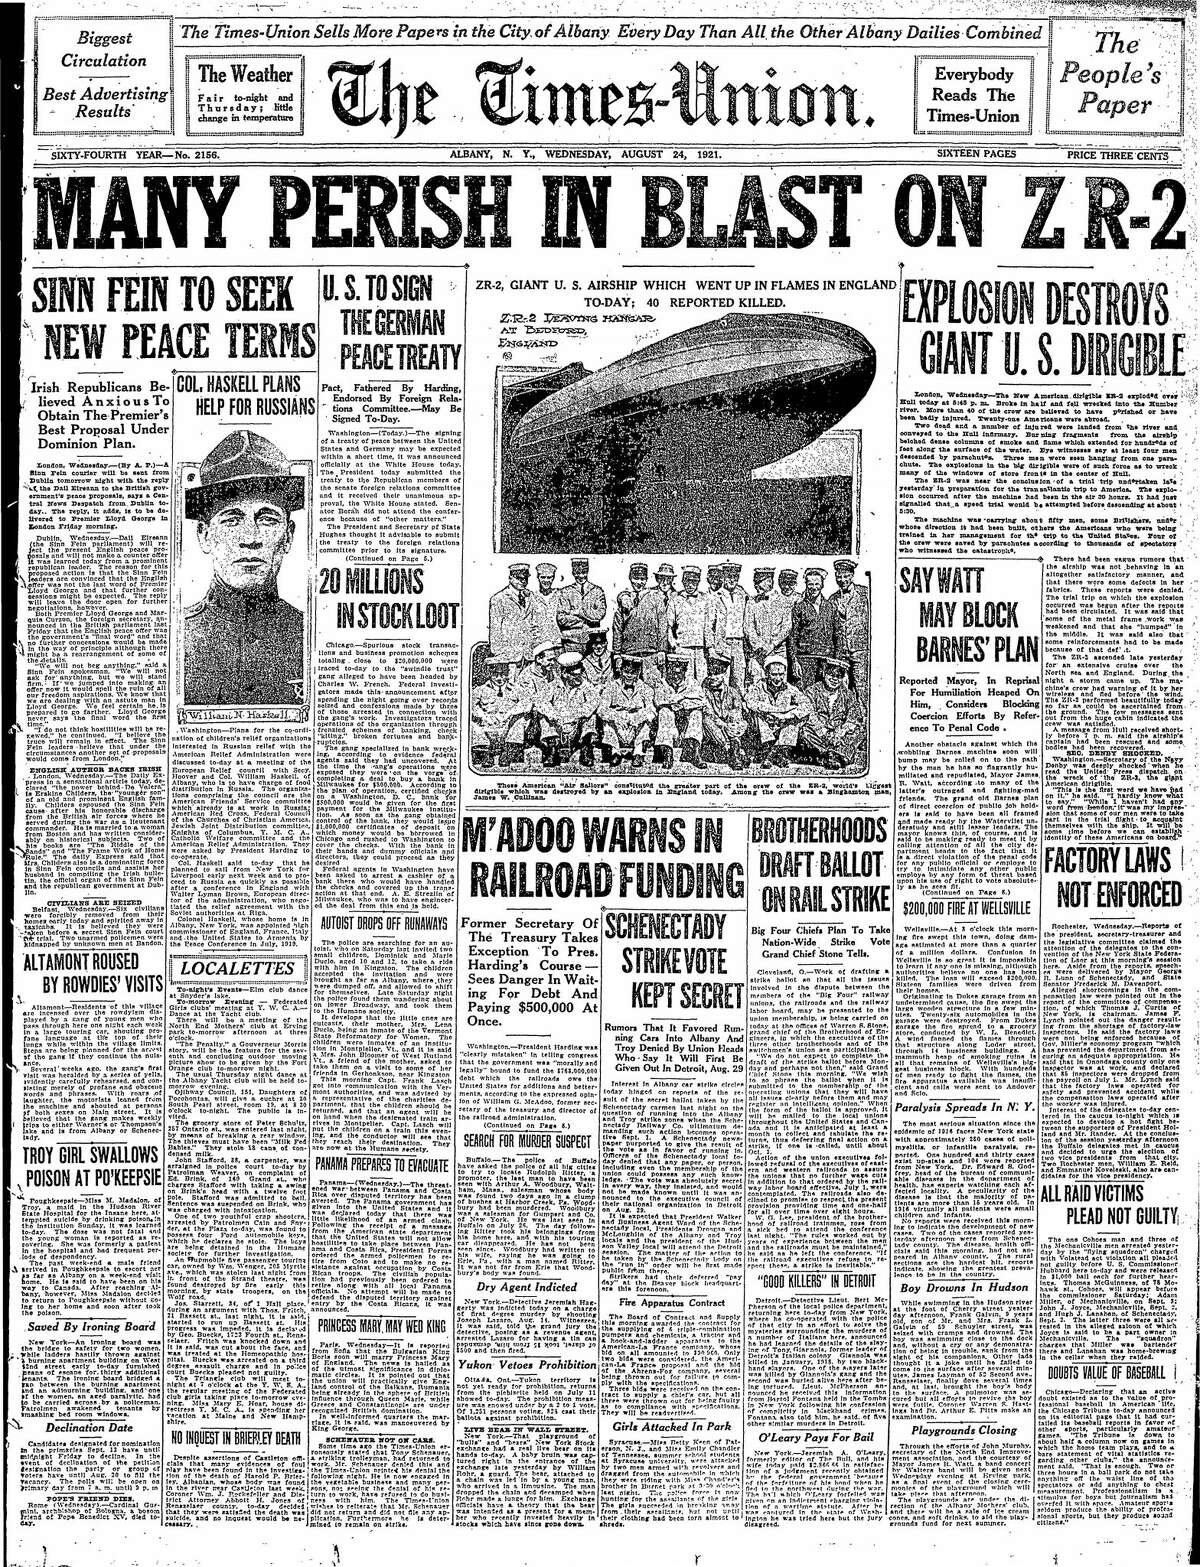 Front page of the Times Union, Aug. 24, 1921.